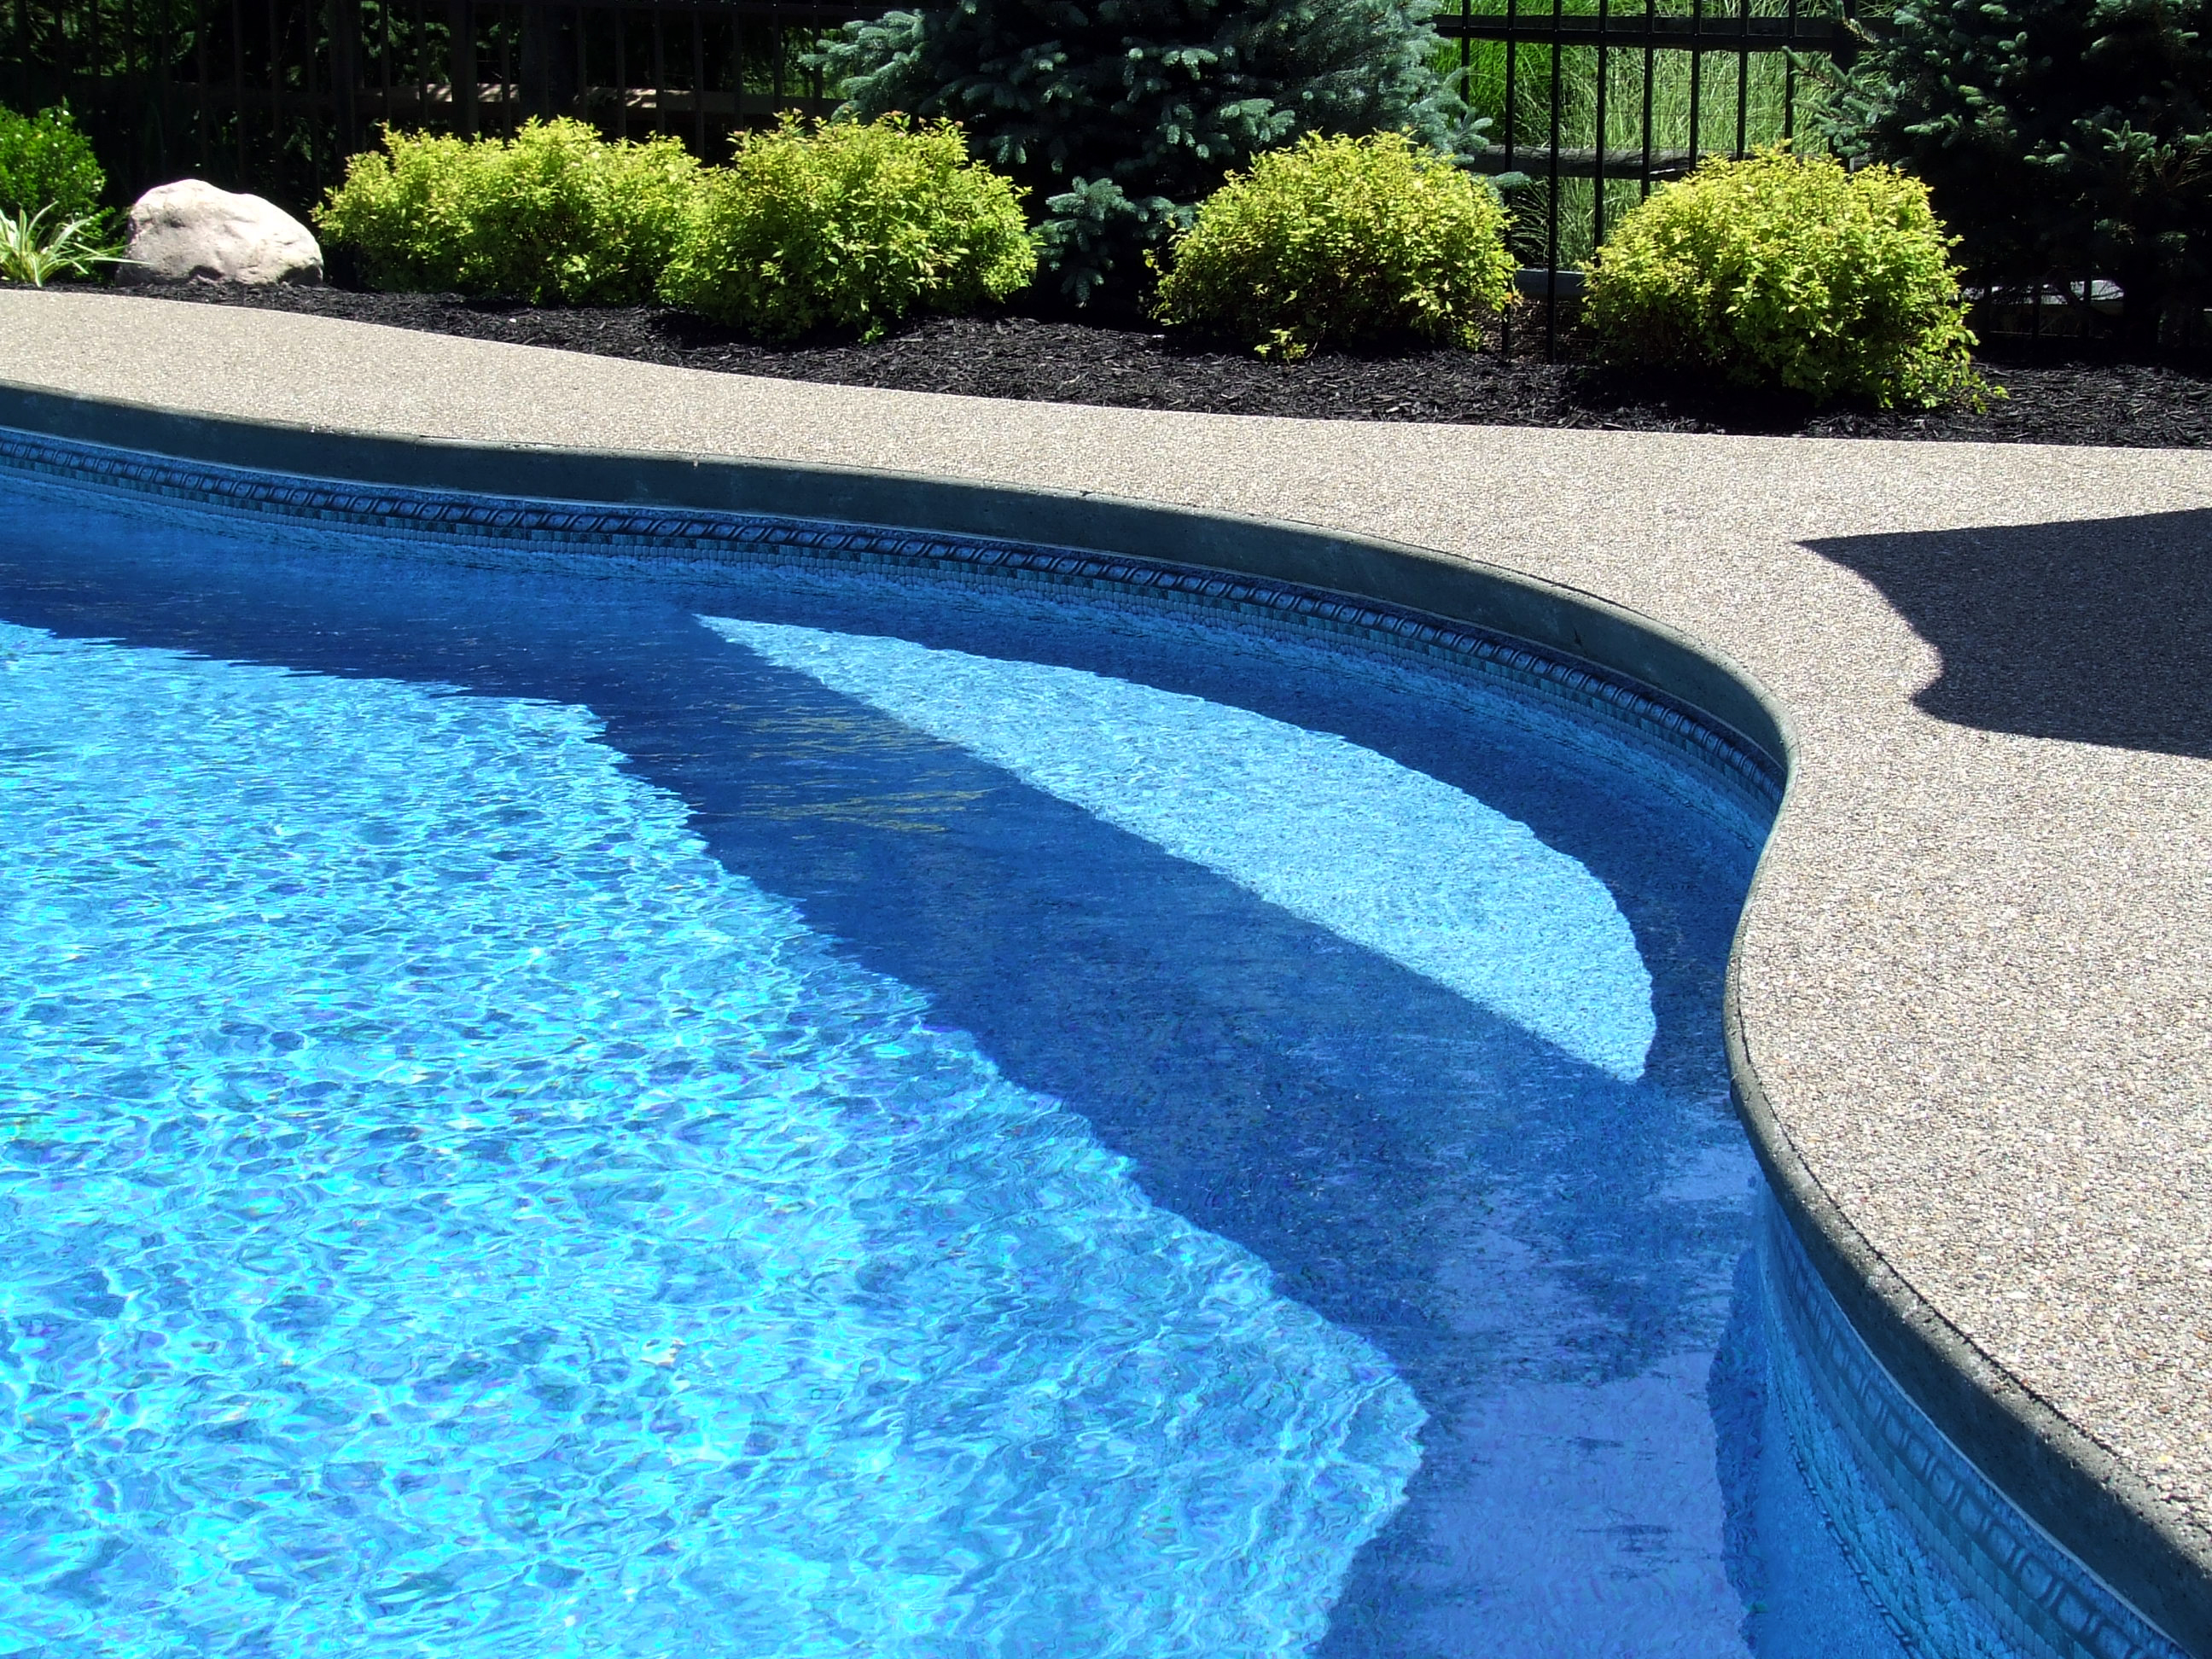 SunSpot Inground Pool Design - 104